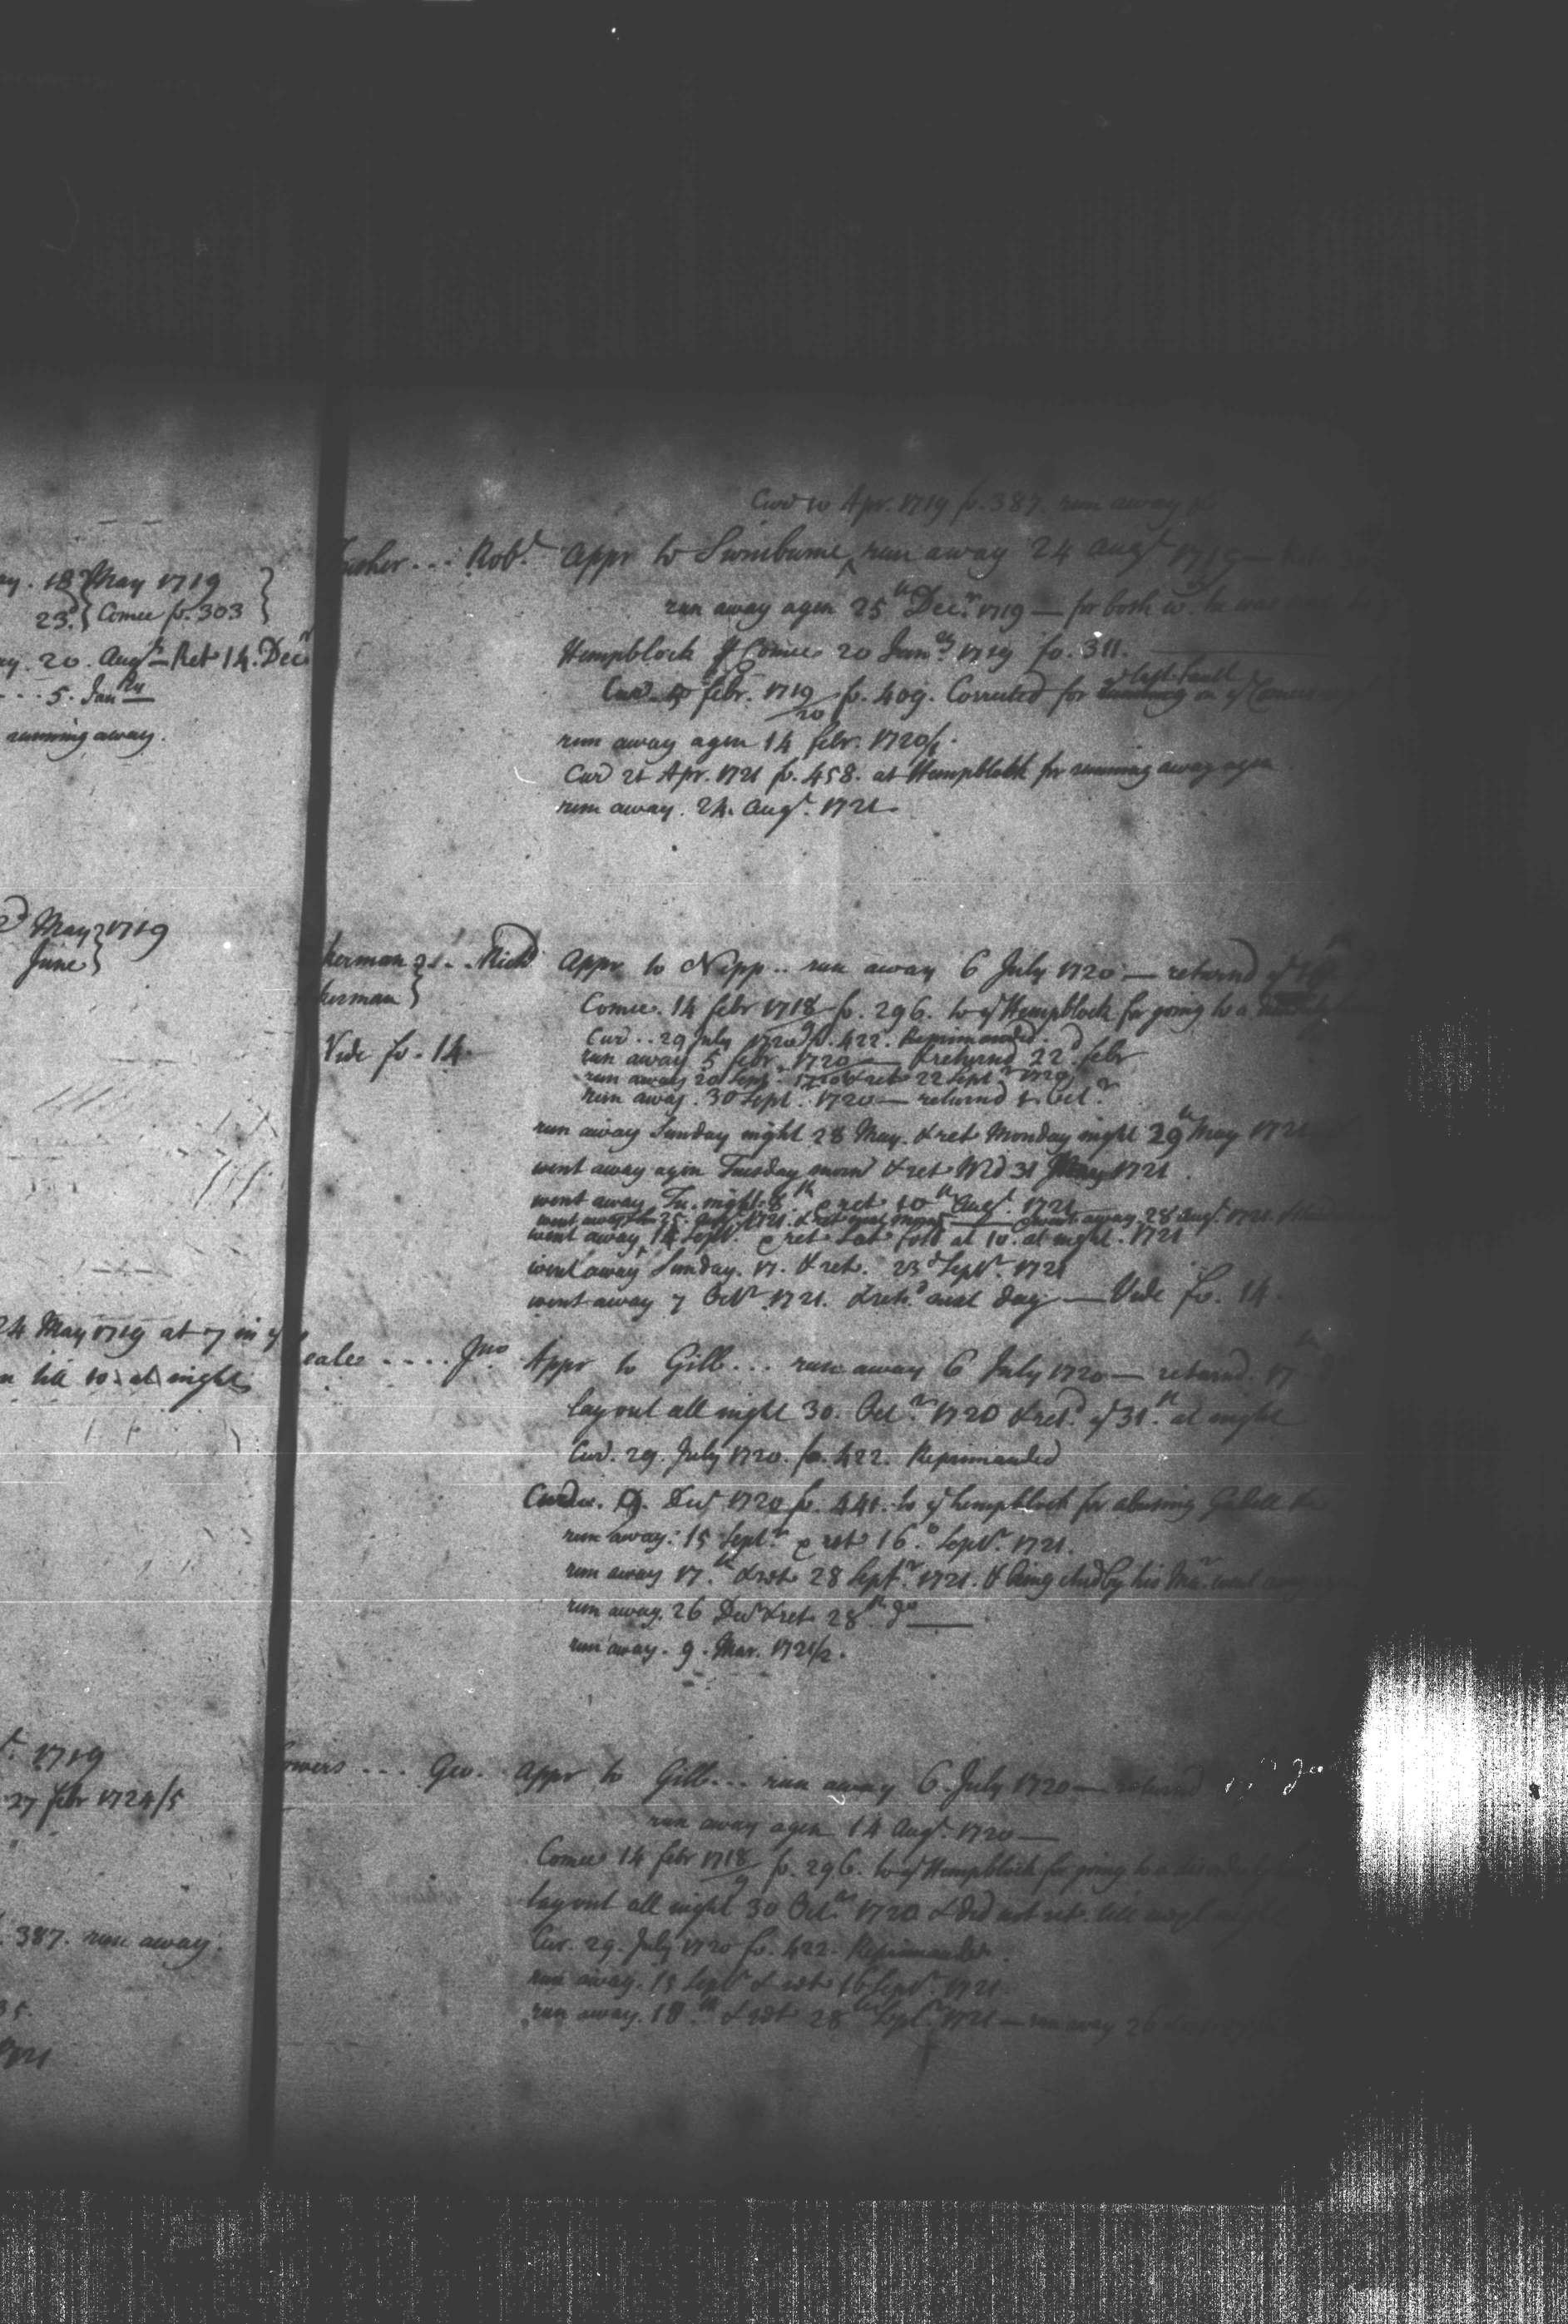 A page from the Bridewell apprenticeship records reflecting the four Bridewell apprentices